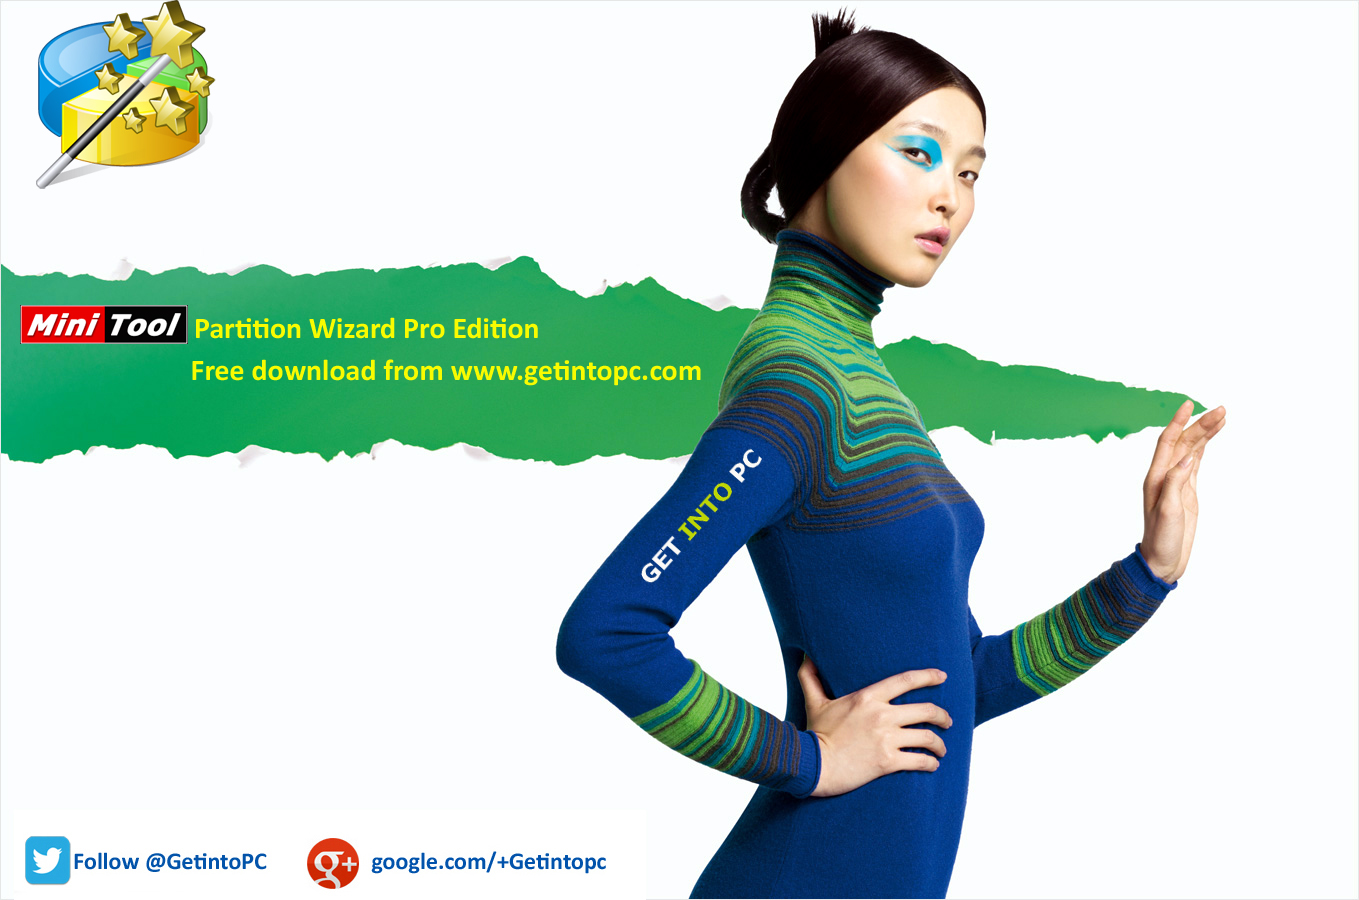 Download MiniTool Partition Wizard Pro Edition free